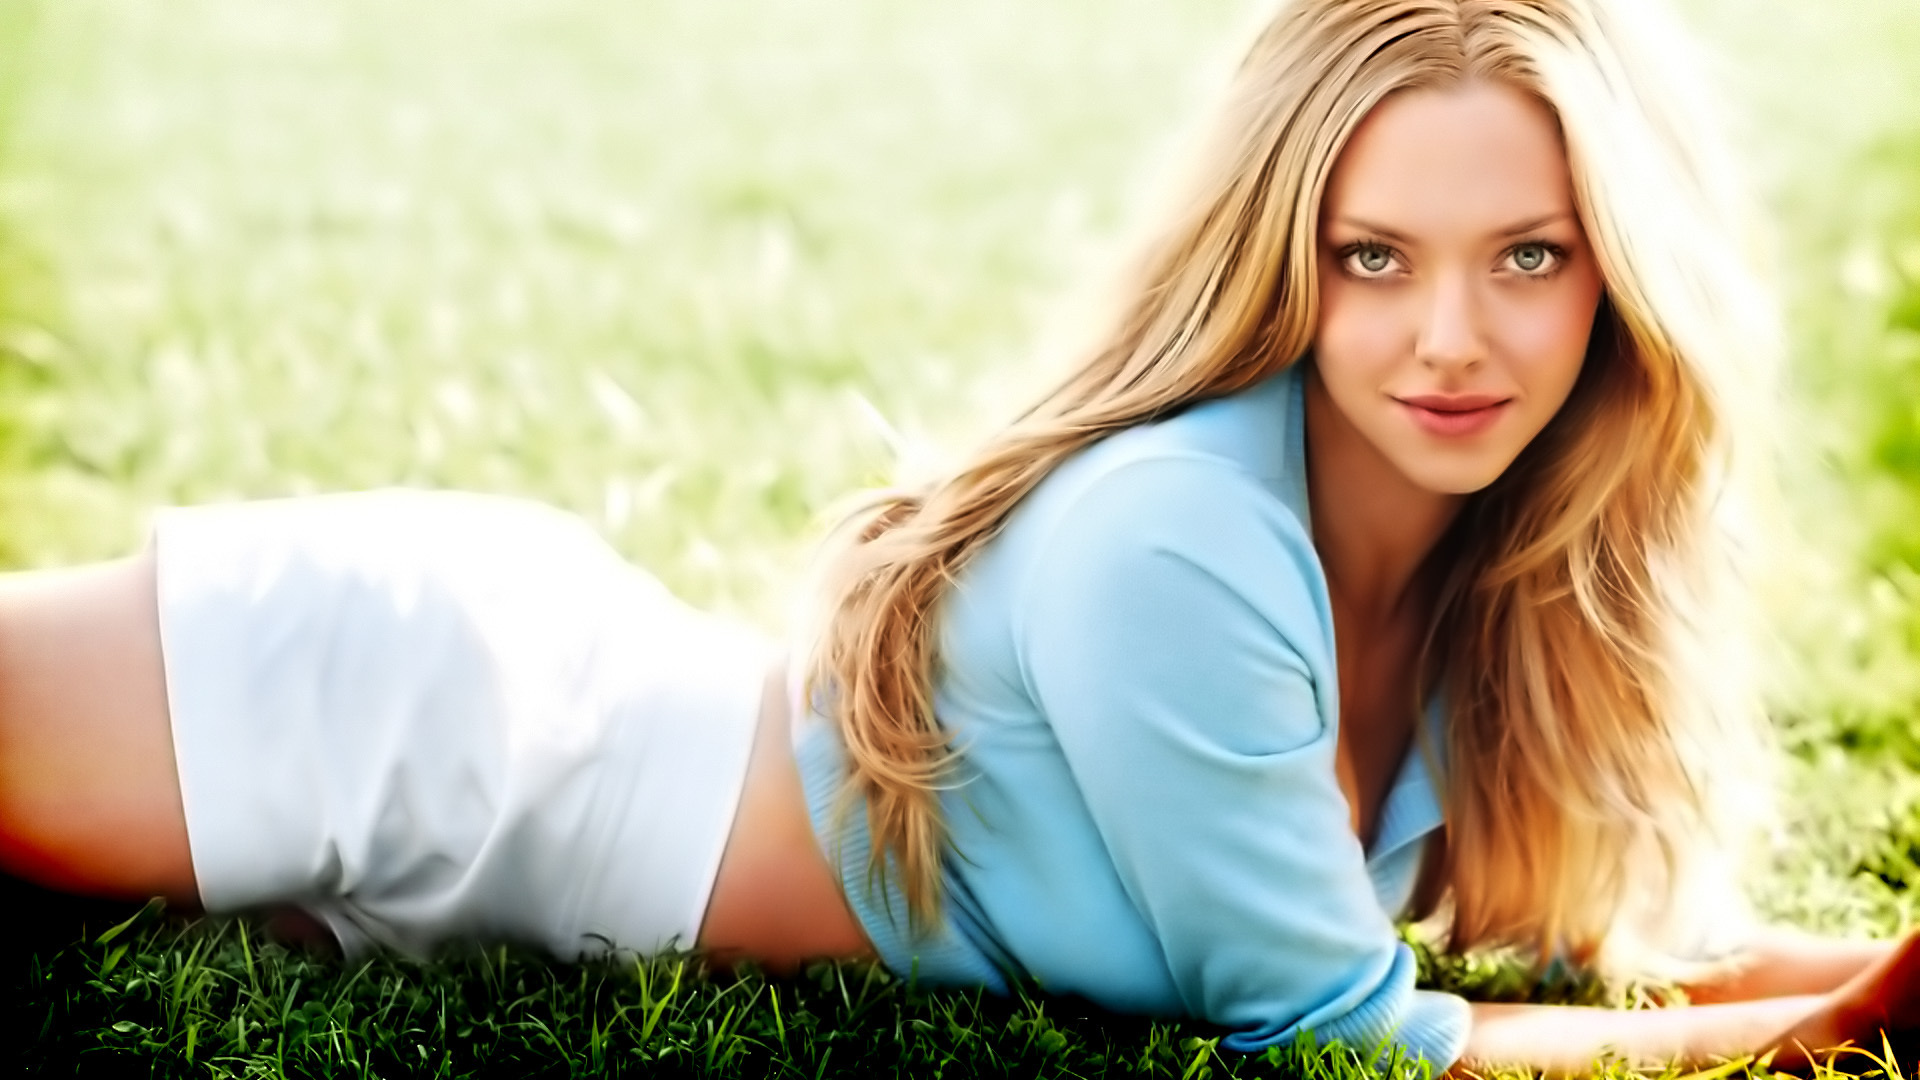 amanda seyfried images amanda hd wallpaper and background